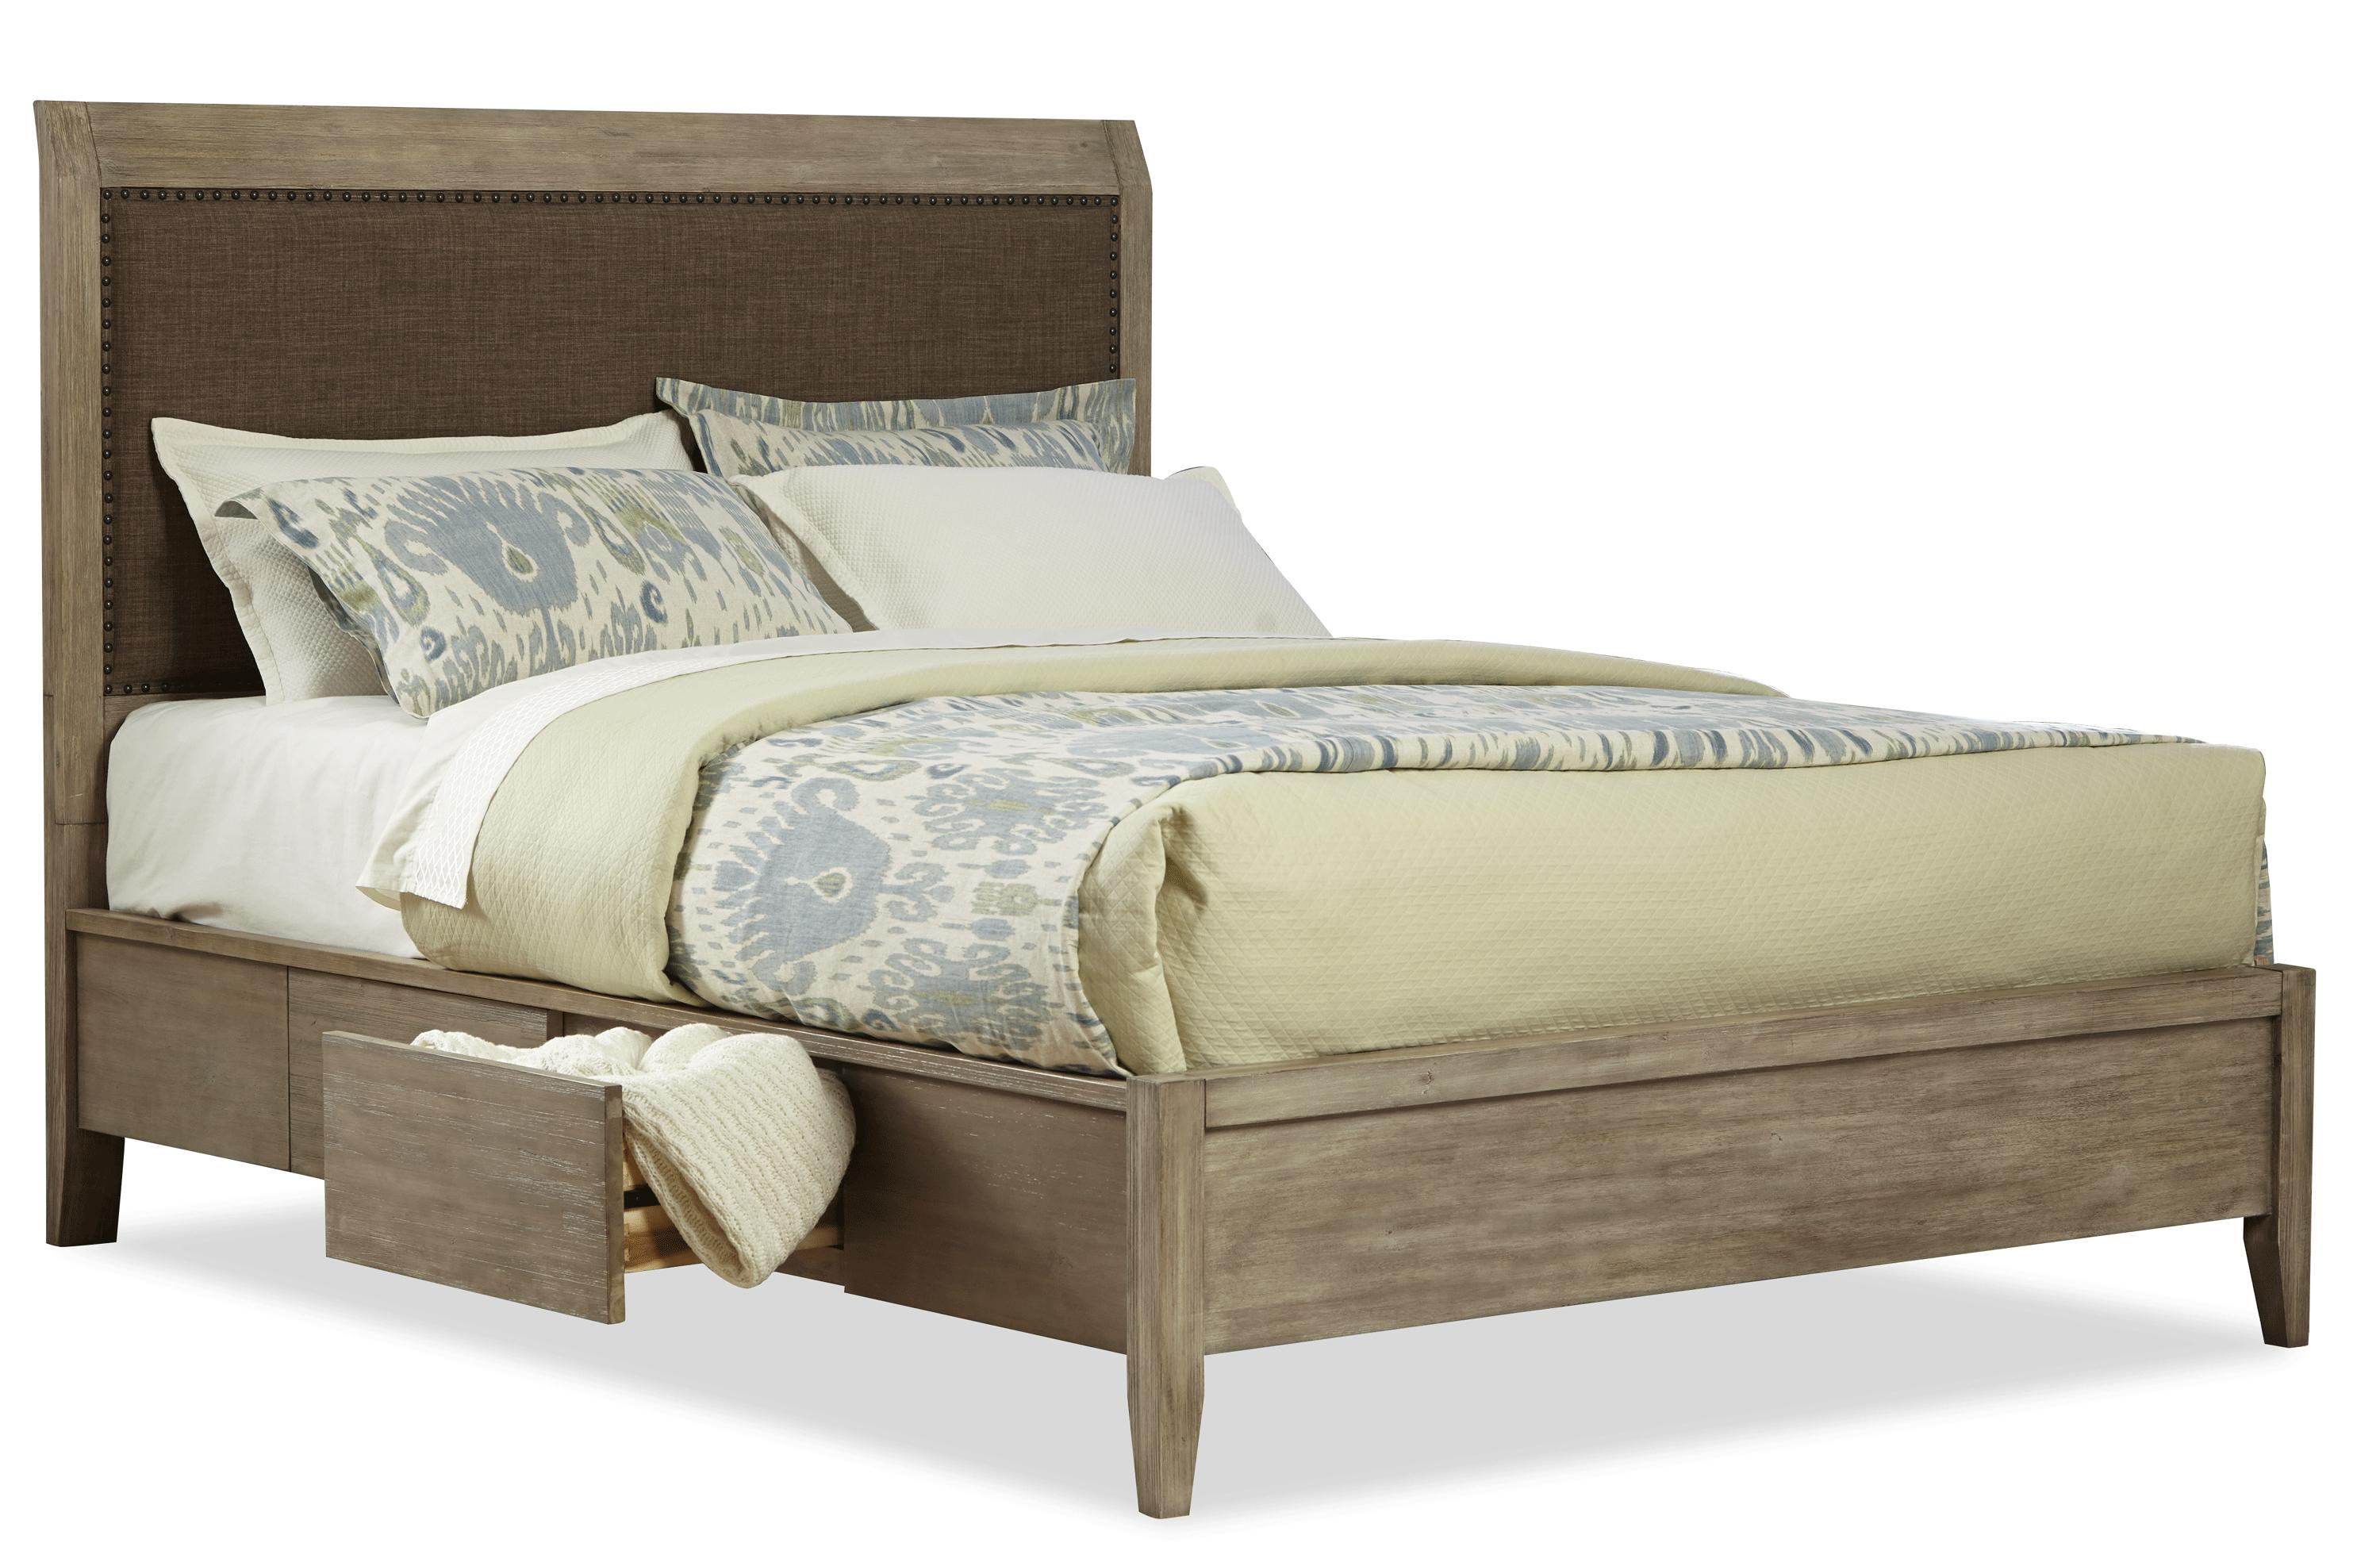 Cresent Fine Furniture Corliss Landing CalKing Upholstered Storage Bed - Item Number: 5633CK+2x32CRS+32CSL